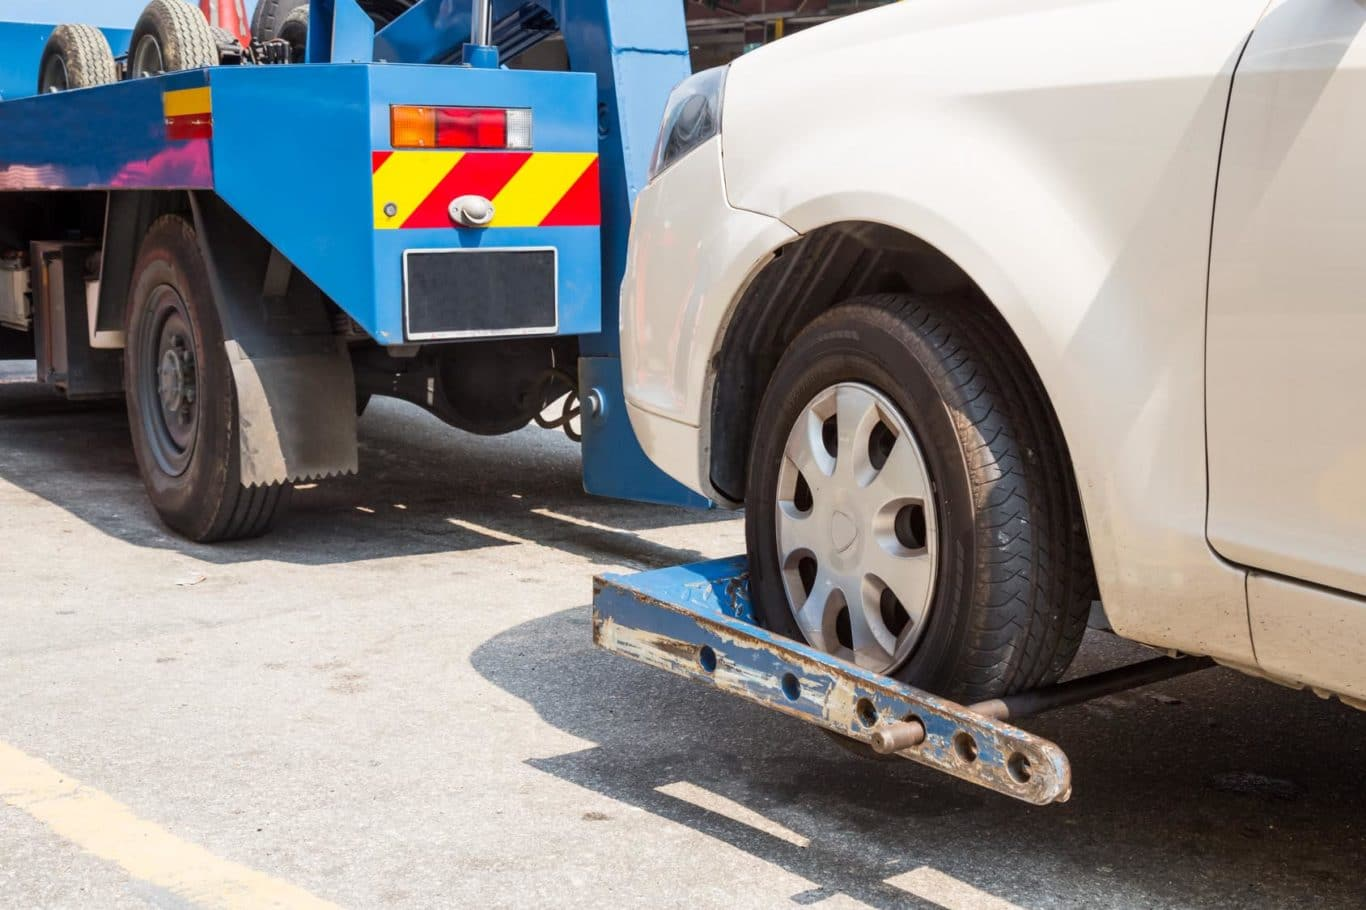 Oldcastle, County Meath expert Breakdown Recovery services